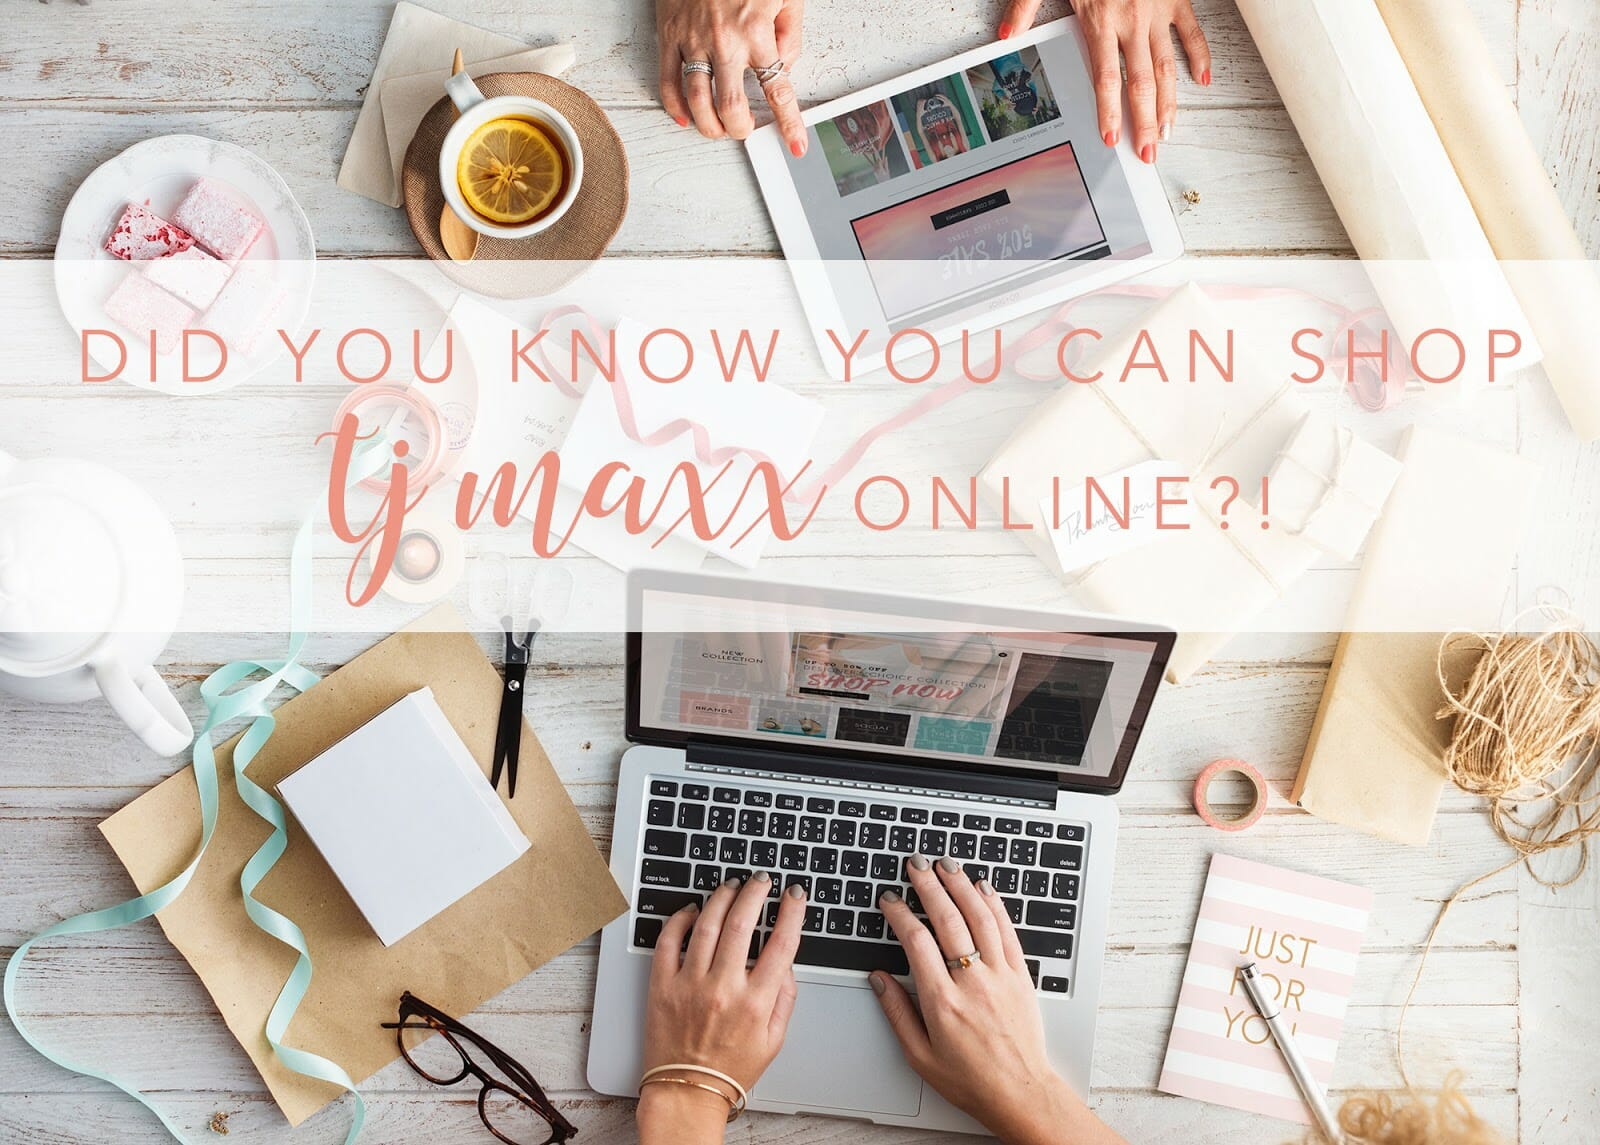 Did You Know You Can Shop TJ Maxx Online?!